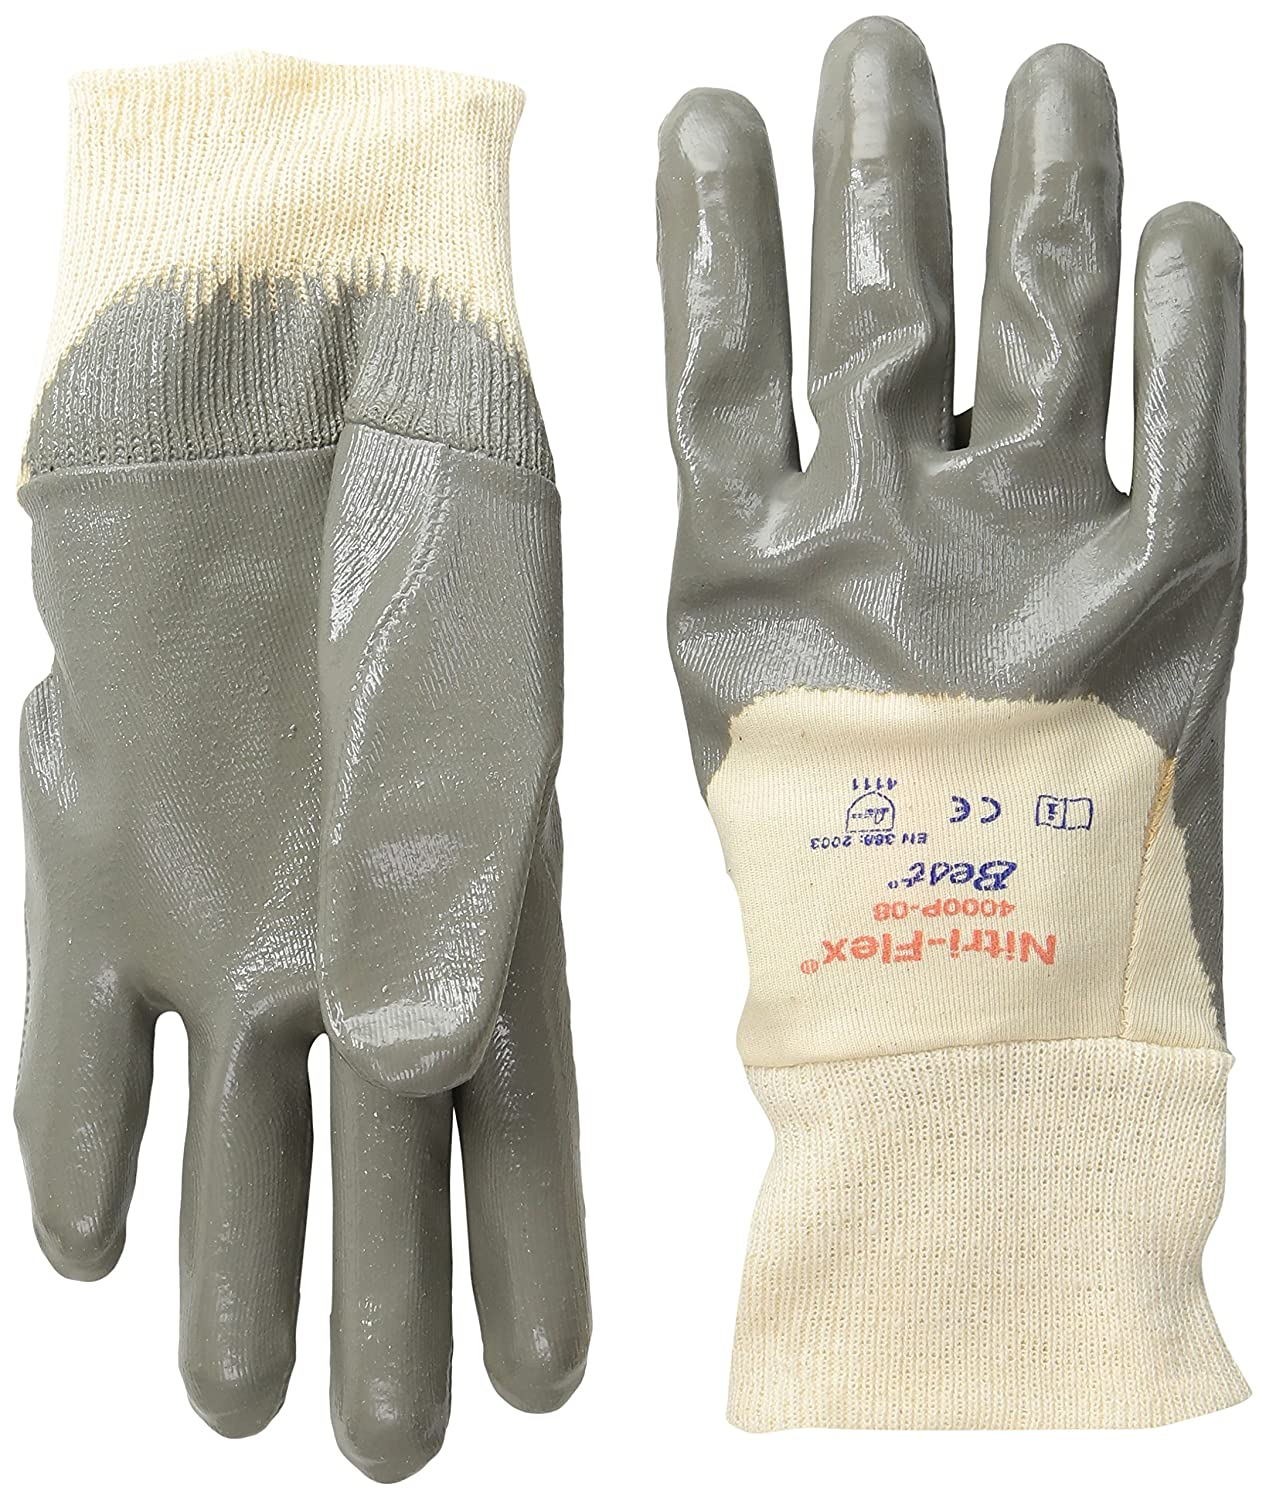 Cotton Interlock Liner Small General Purpose Work Pack of 12 Pairs SHOWA 4000P  Palm-Coated Nitrile Glove